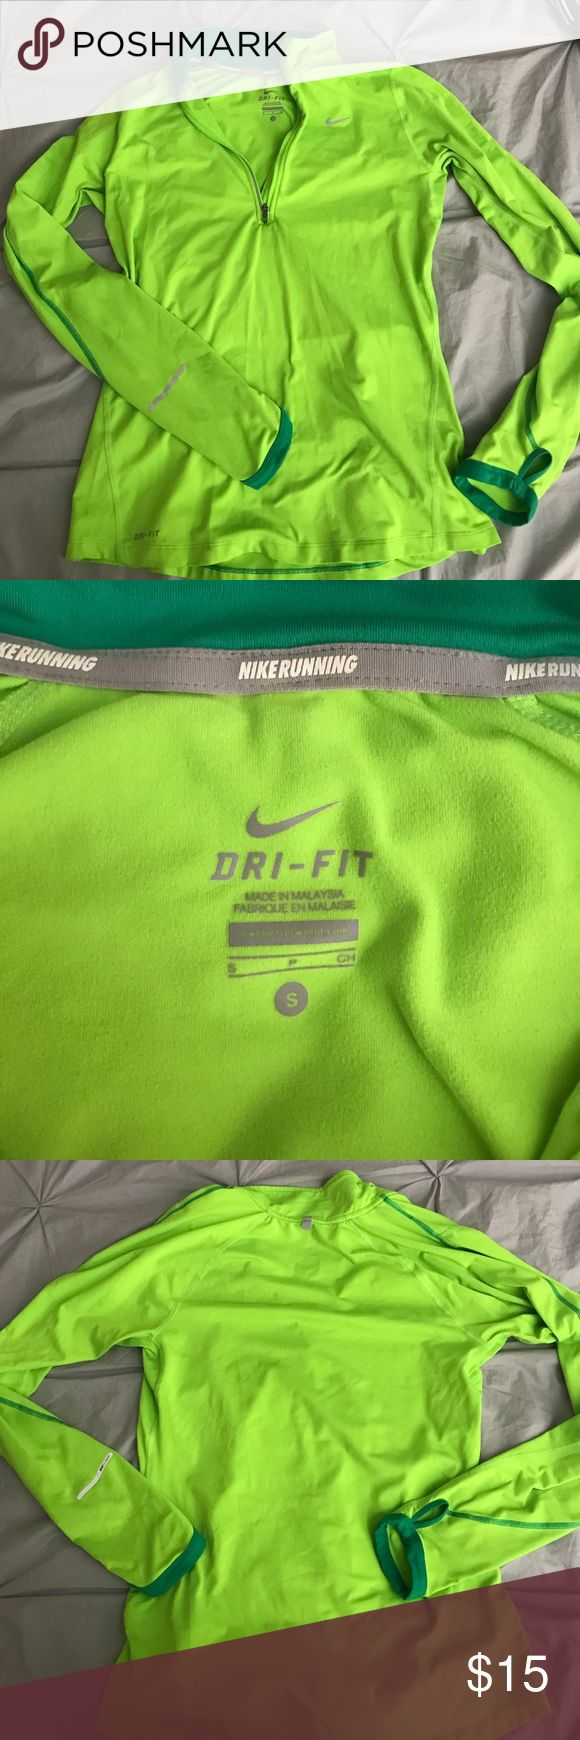 NIKE dri-fit long sleeve running top Neon green women's NIKE long-sleeve running top. Very cute & comfortable. Bright with a couple of reflective details-great for being SEEN while you run. Has thumb holes & half-zip in front. Size small. Excellent condition. Nike Tops Tees - Long Sleeve